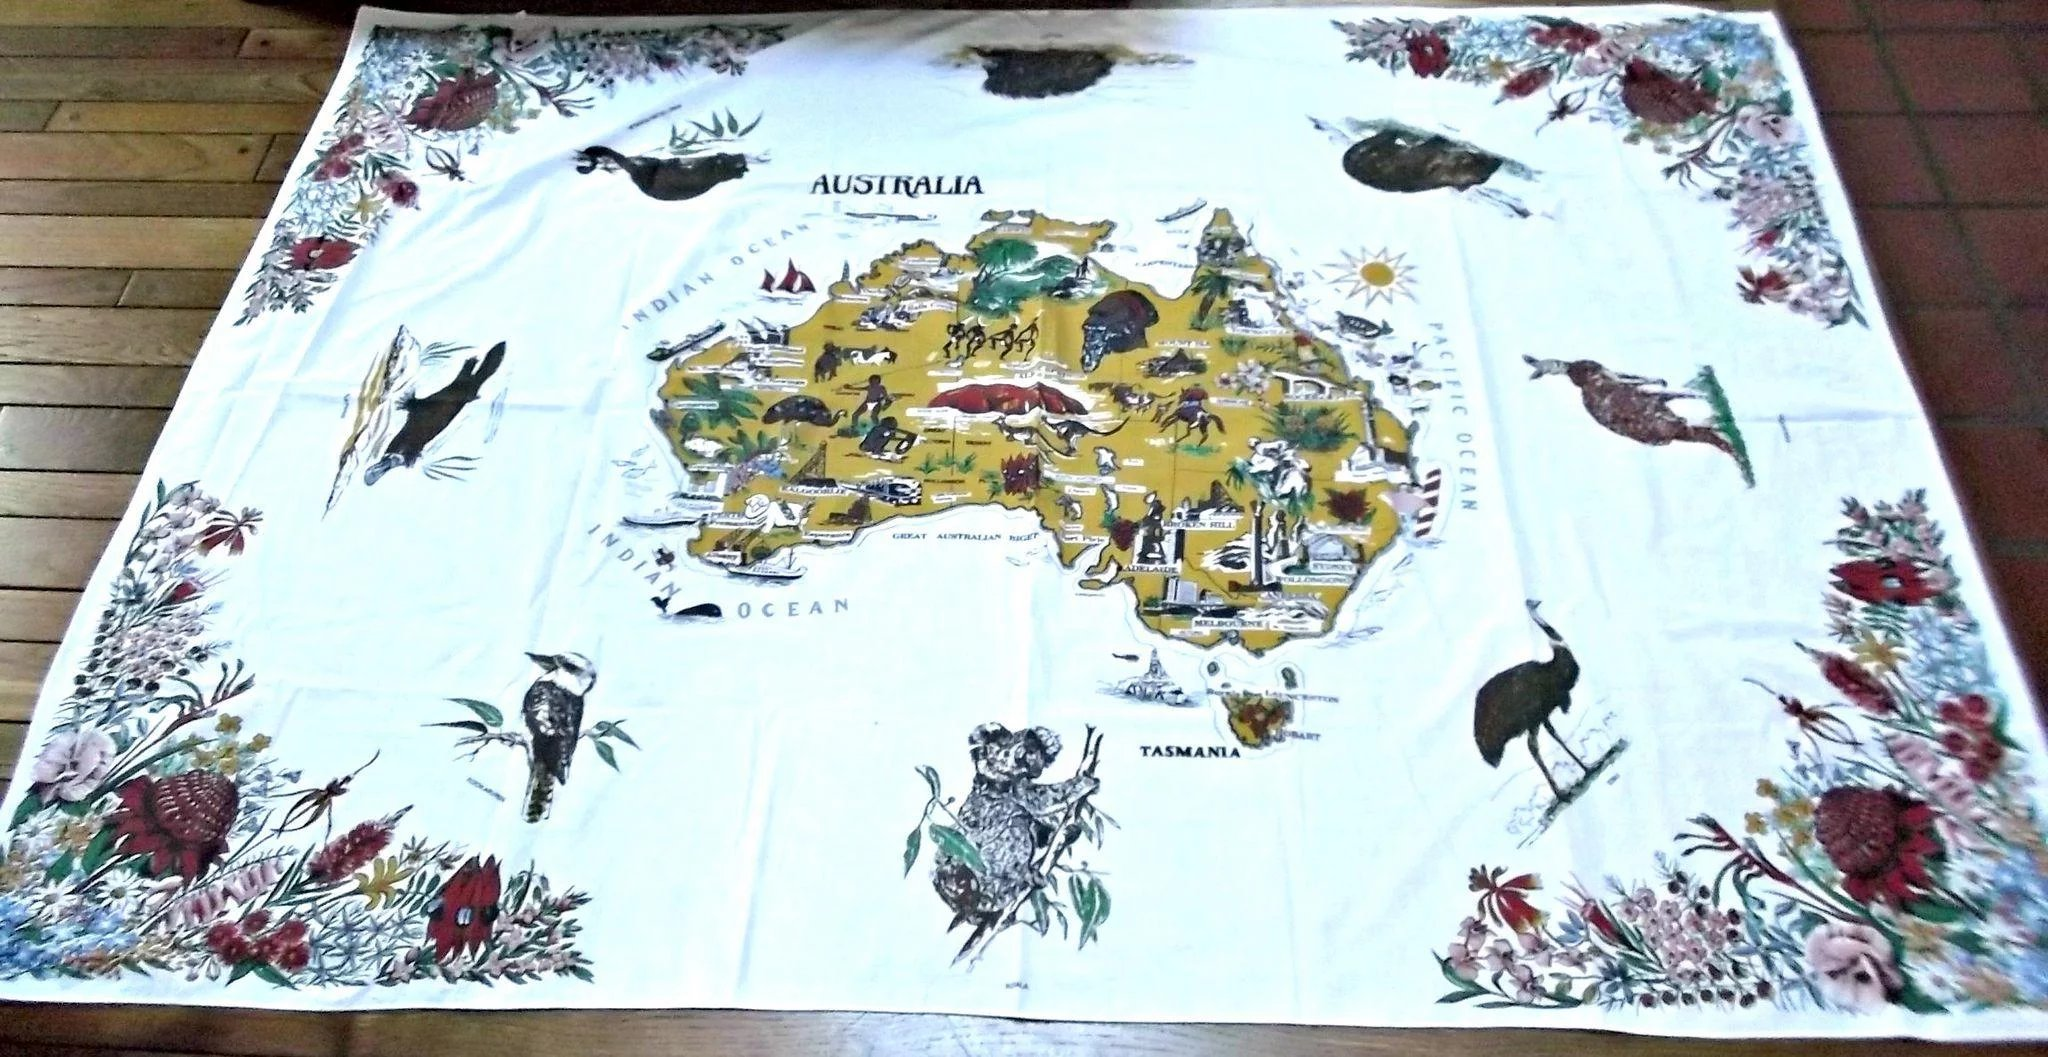 Vintage australia map table cloth polyester cotton rectangle vintage australia map table cloth polyester cotton rectangle click to expand gumiabroncs Choice Image